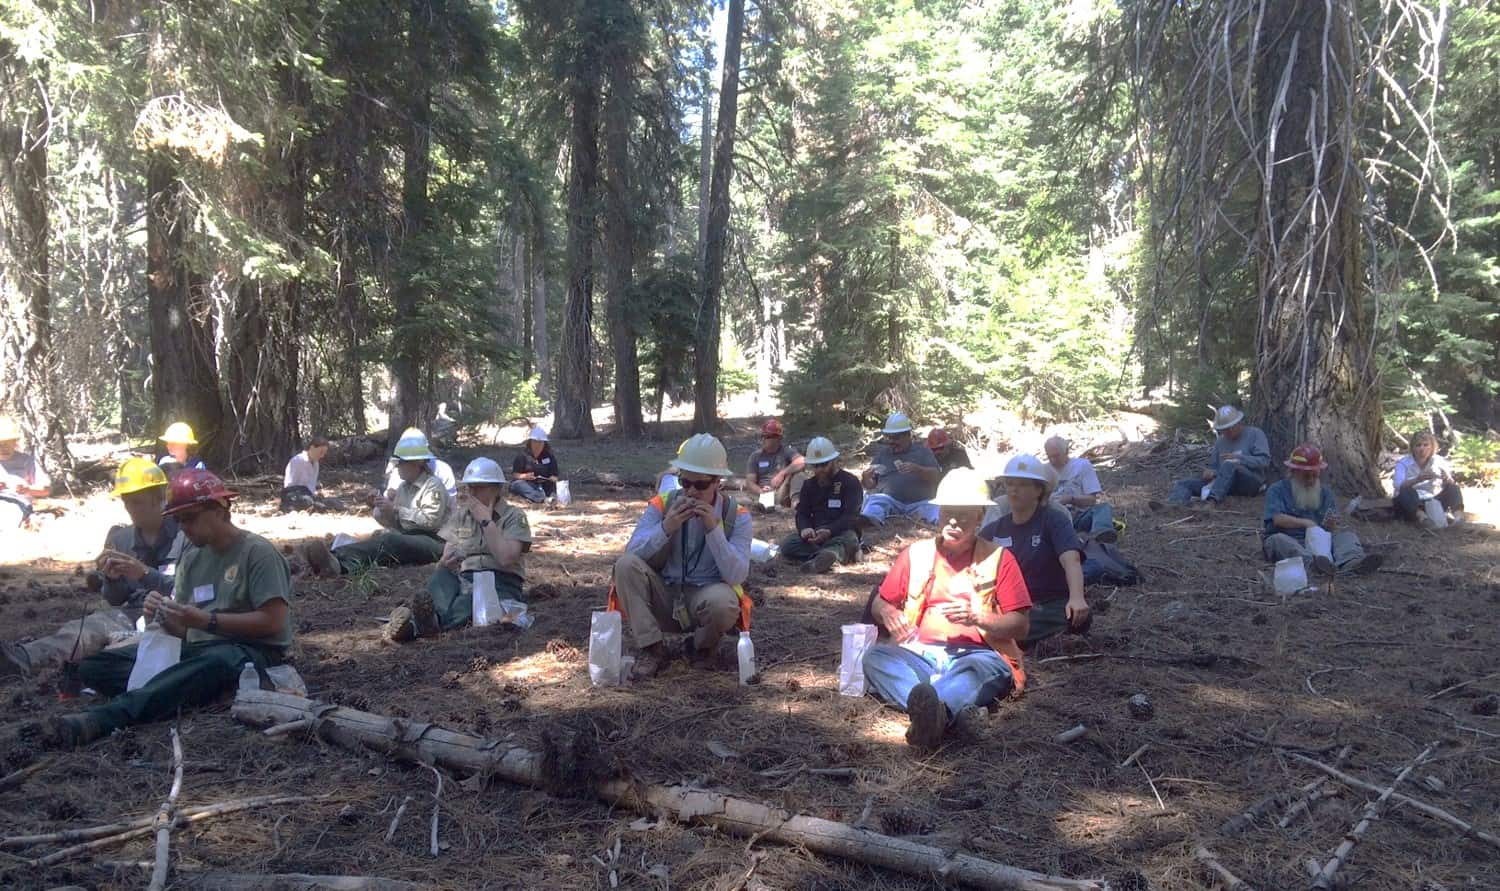 Workshop participants eating sack lunches in the forest.